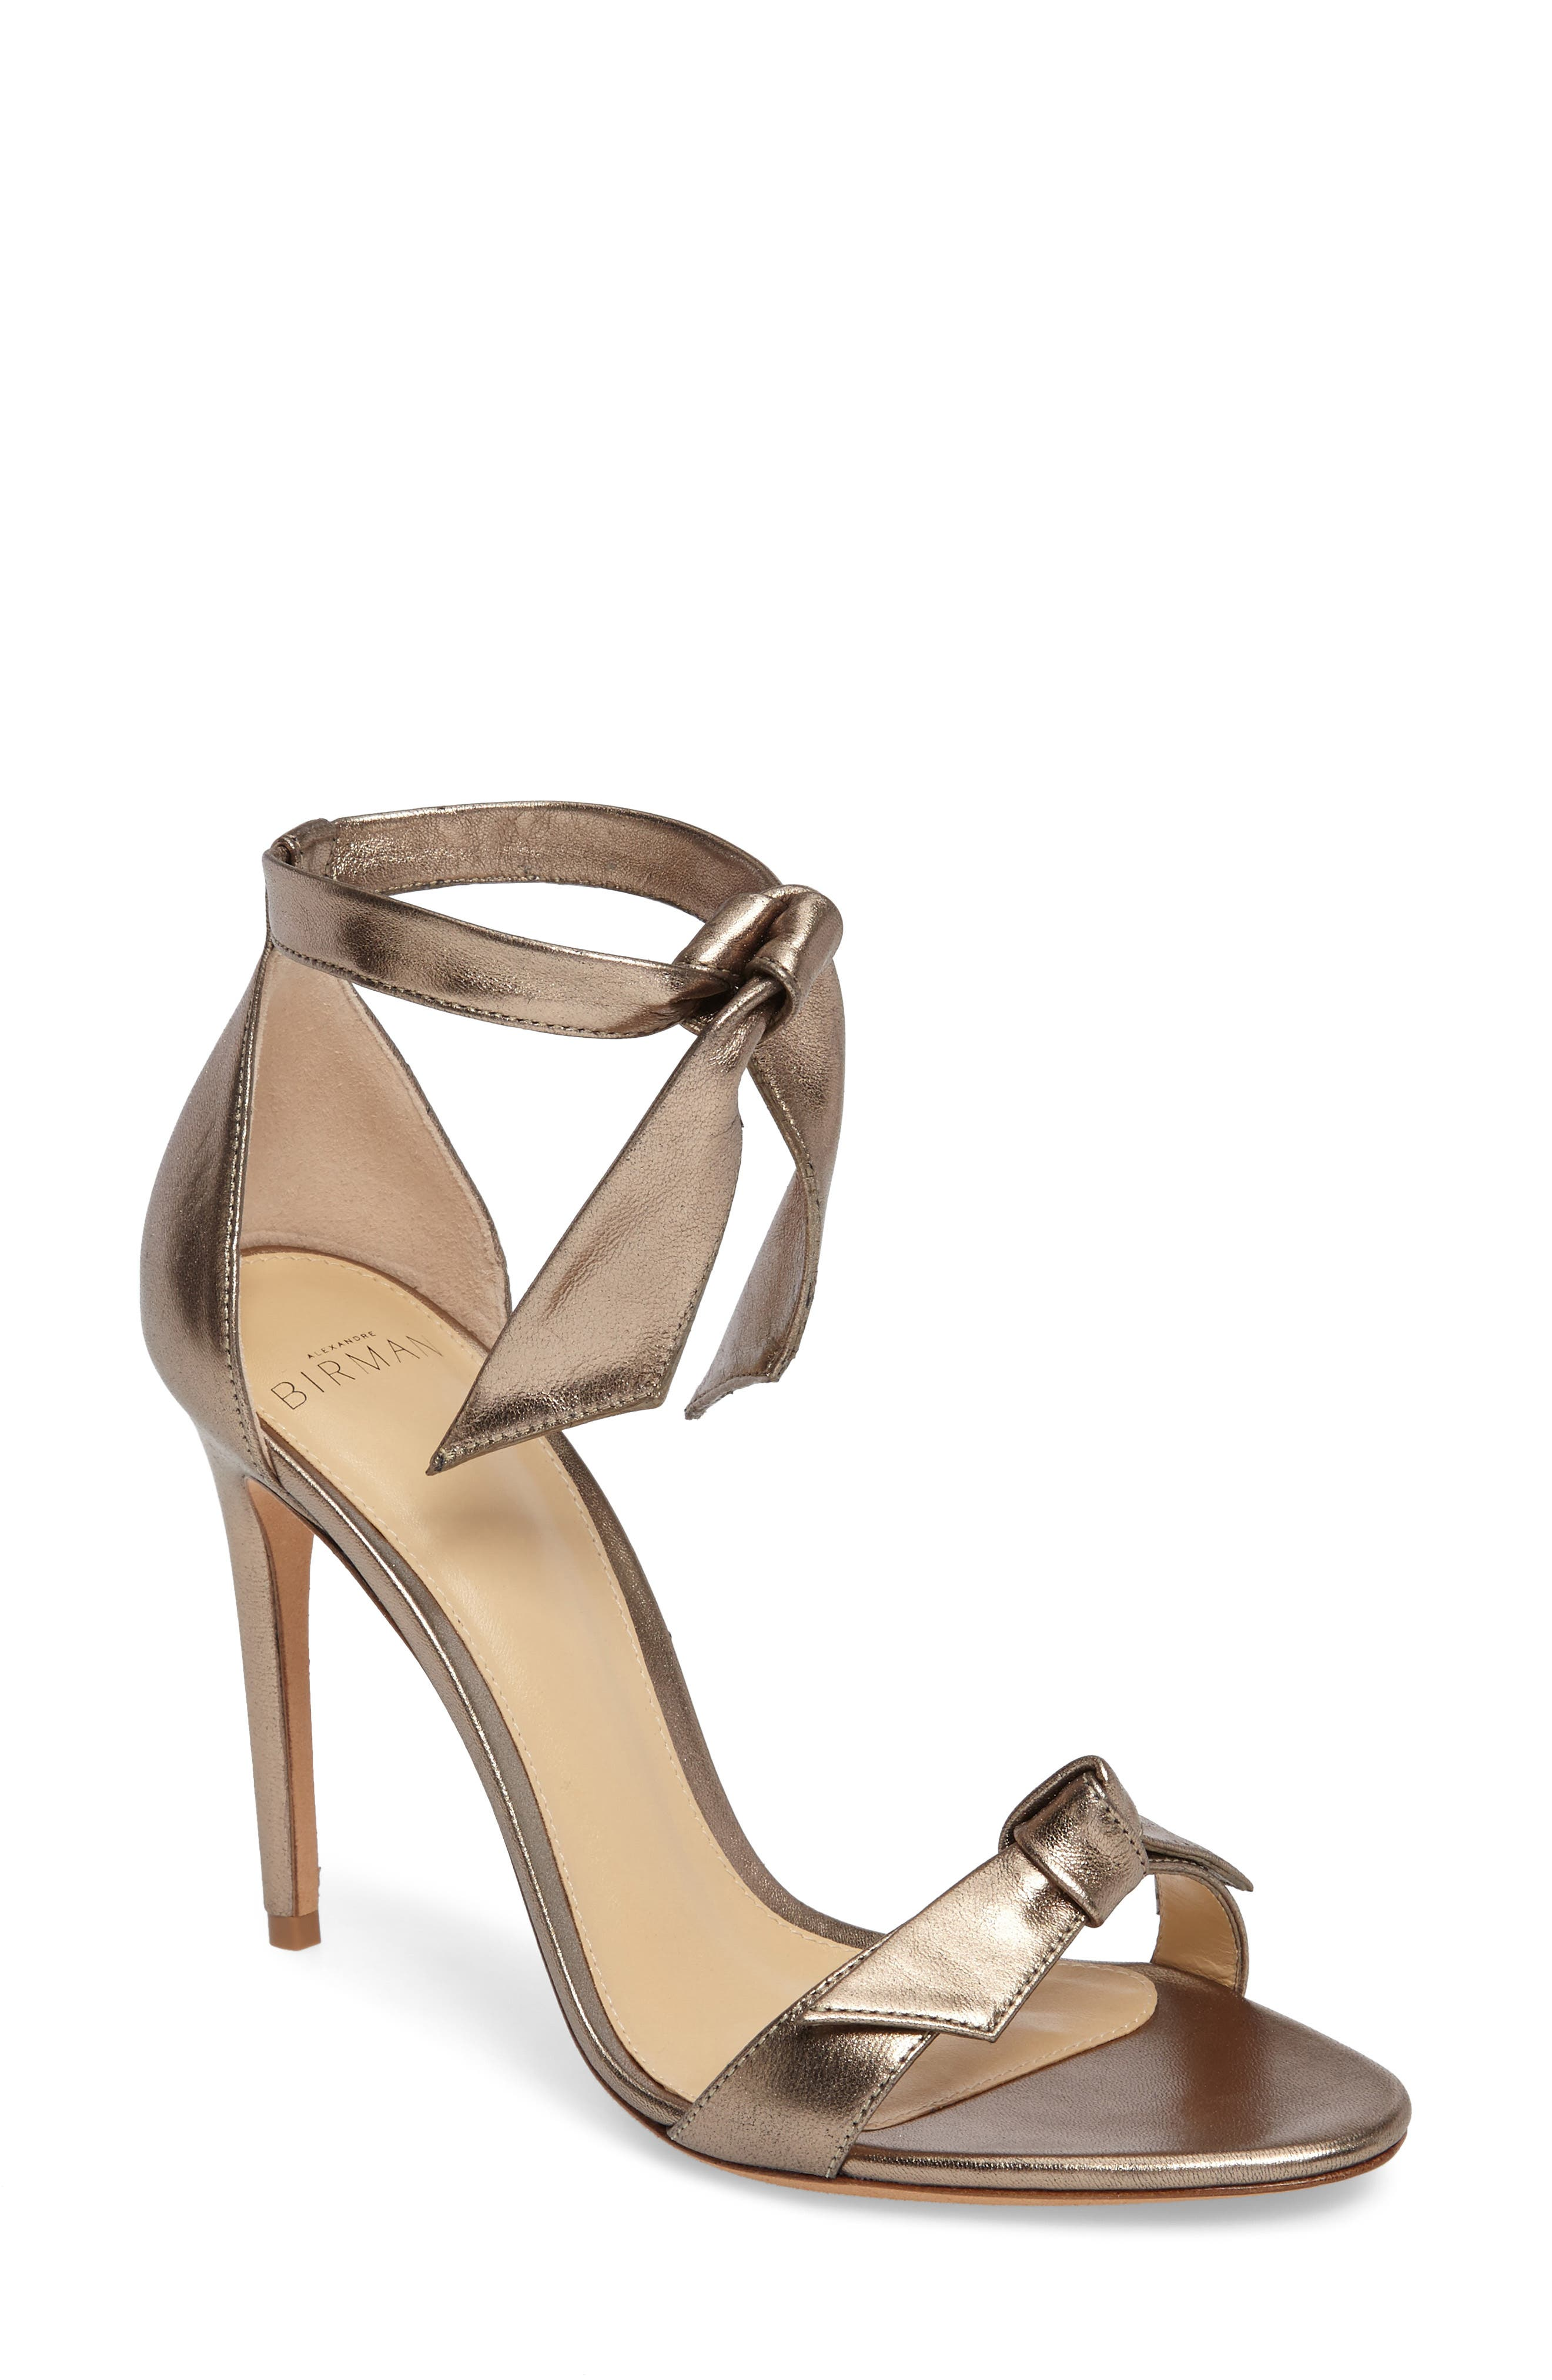 Alternate Image 1 Selected - Alexandre Birman Clarita Ankle Tie Sandal (Women)